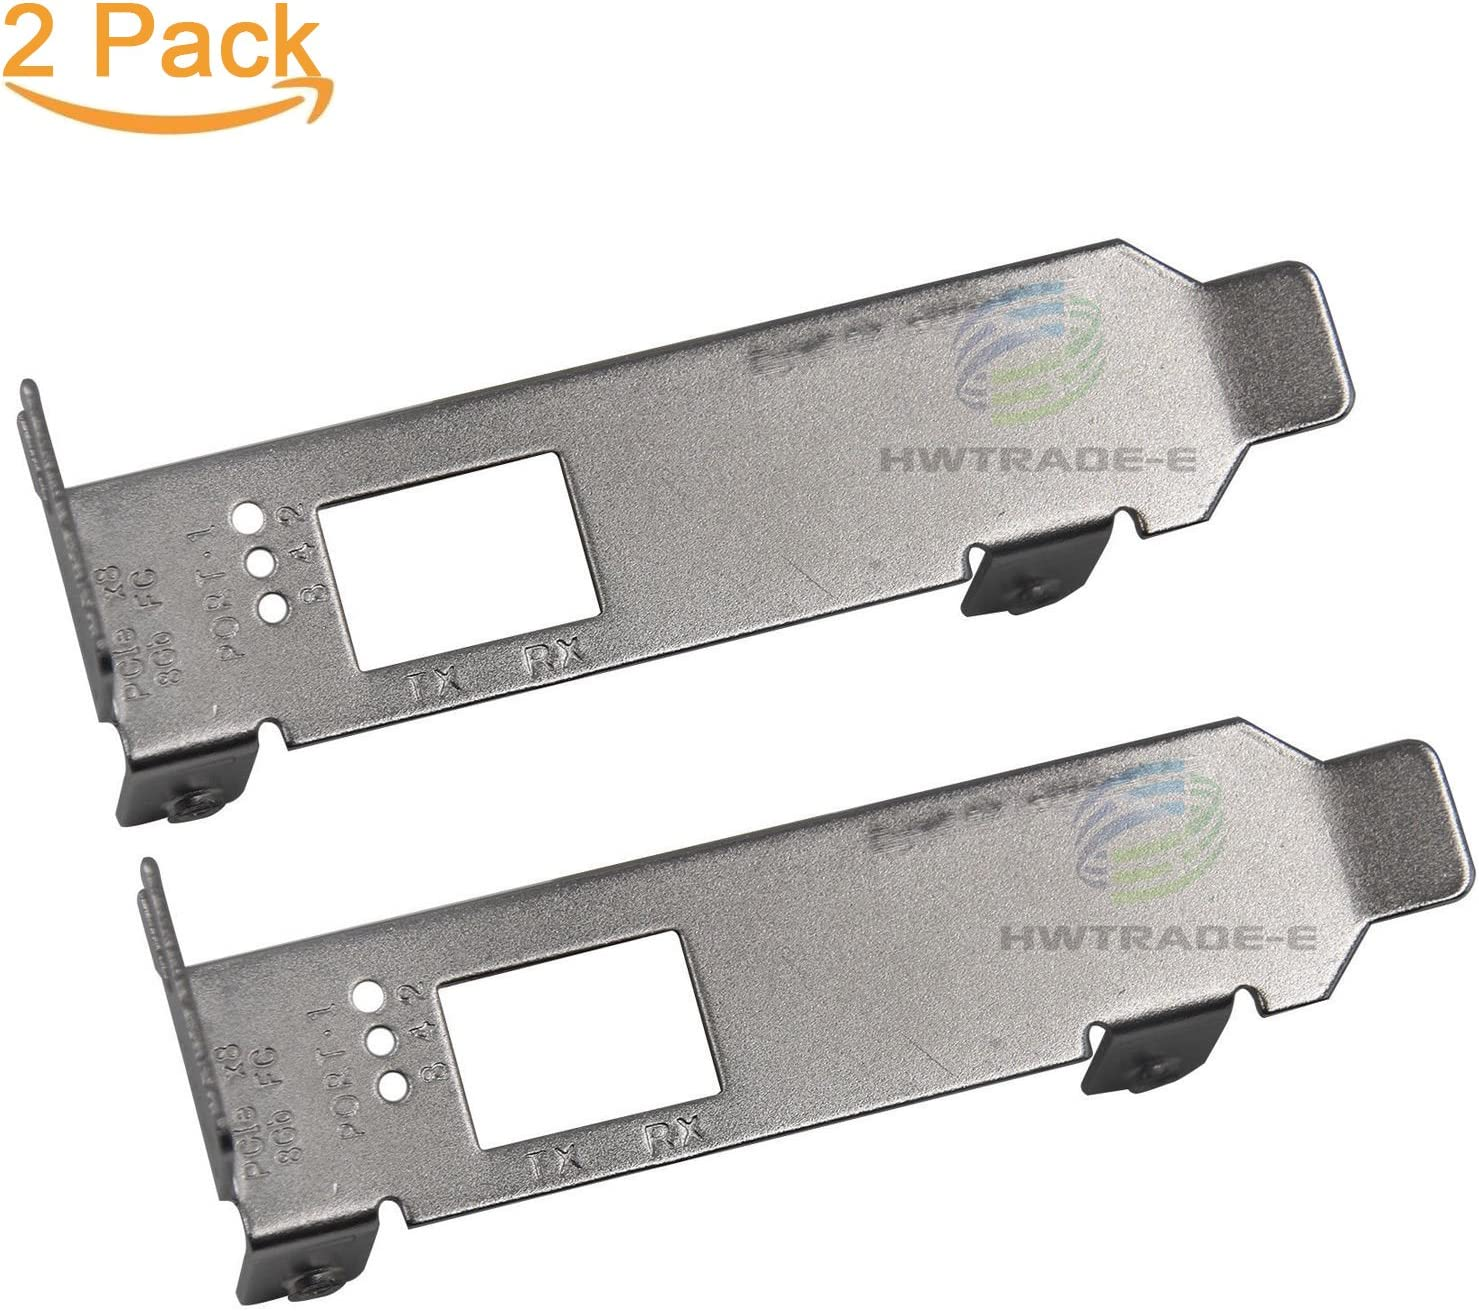 HP AK344A 42D0503 42D0507,IBM 42D0501 Low Profile Bracket for Qlogic QLE2560